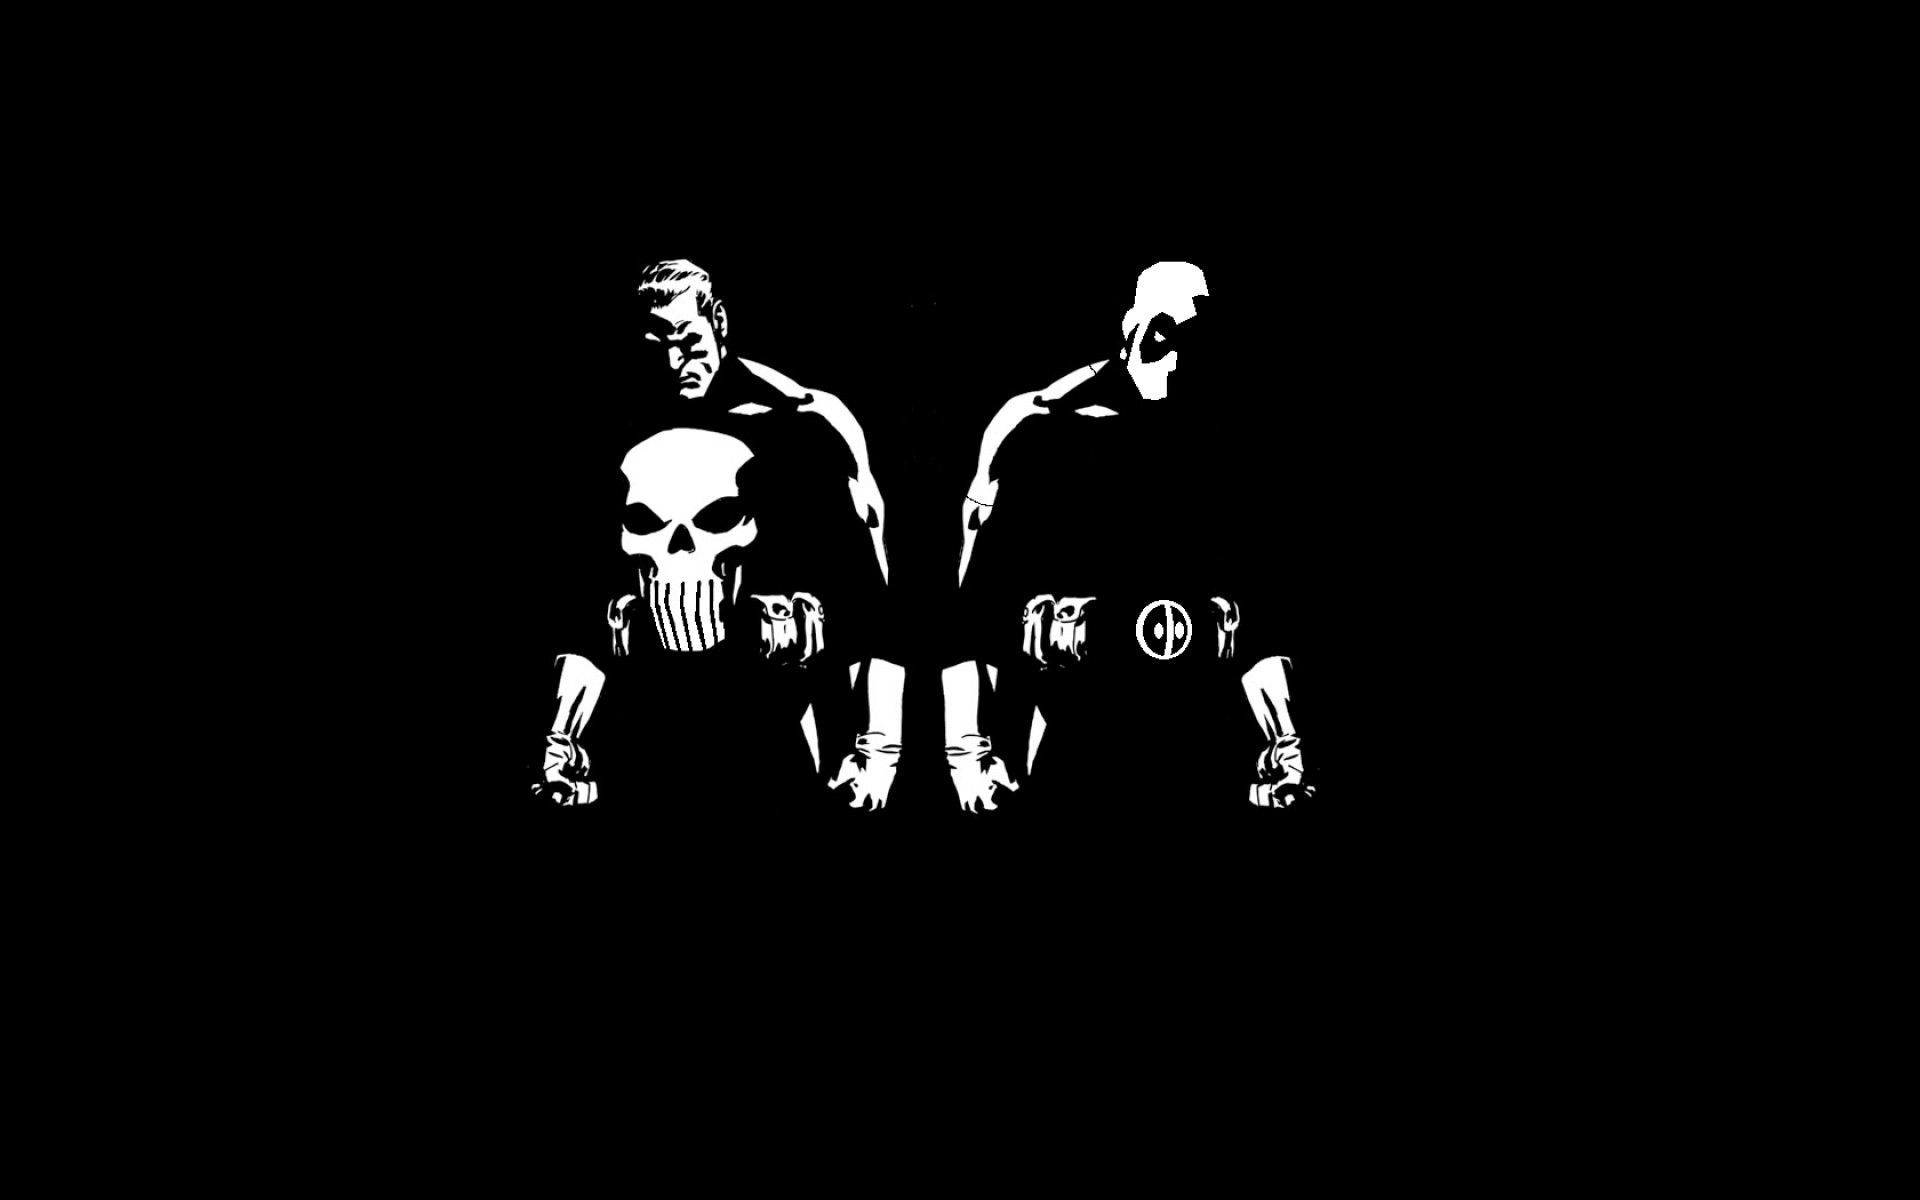 1920x1200 The Punisher Wallpapers Desktop K HD Backgrounds Fungyung